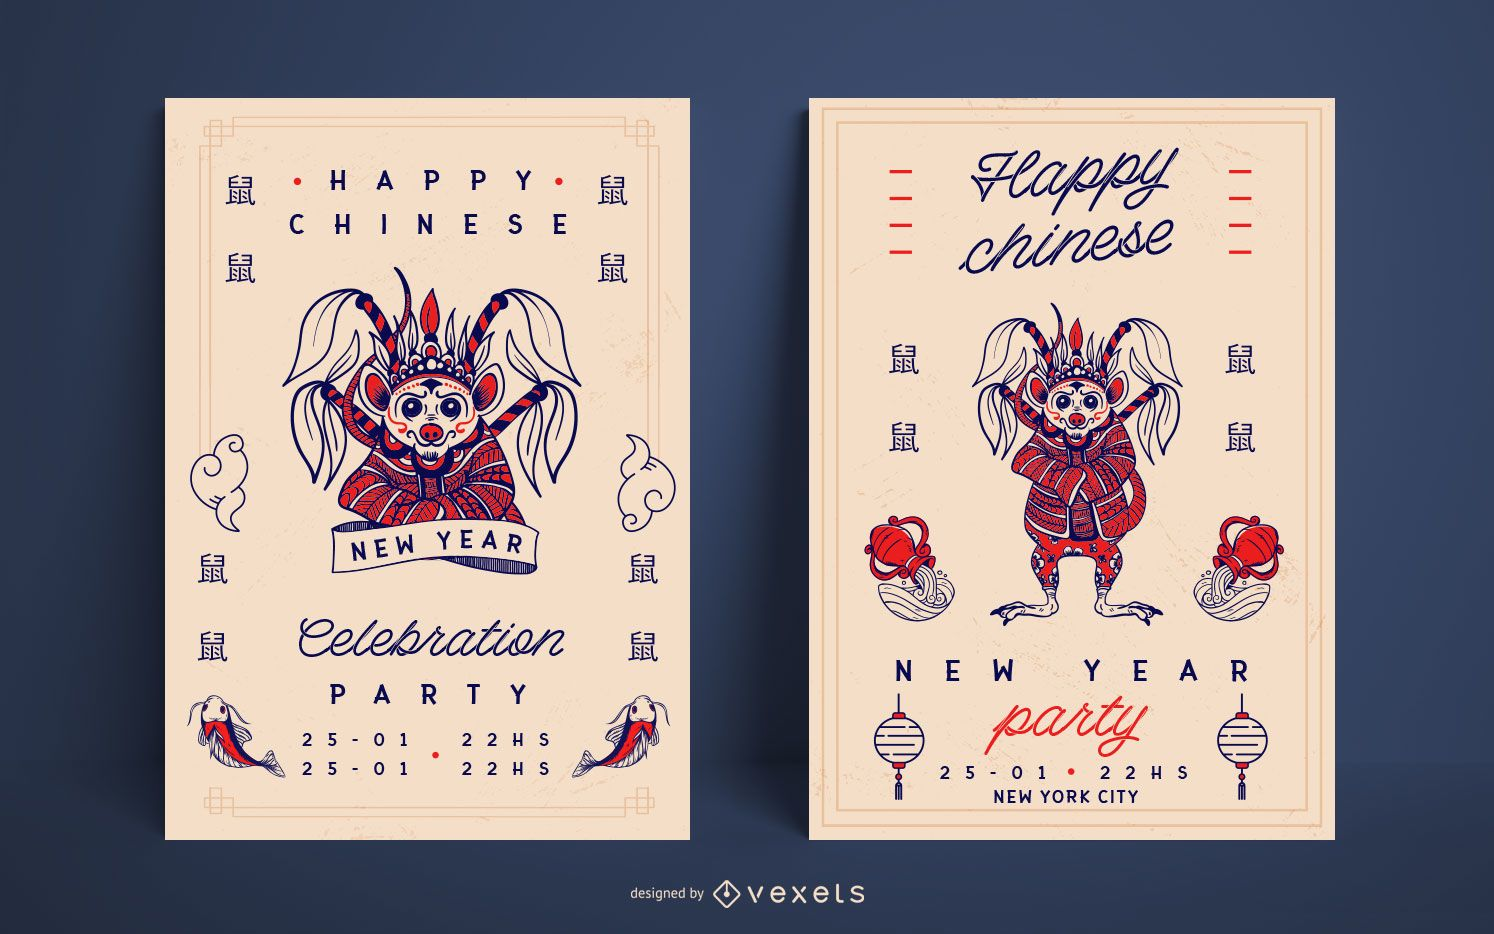 Chinese new year party poster template